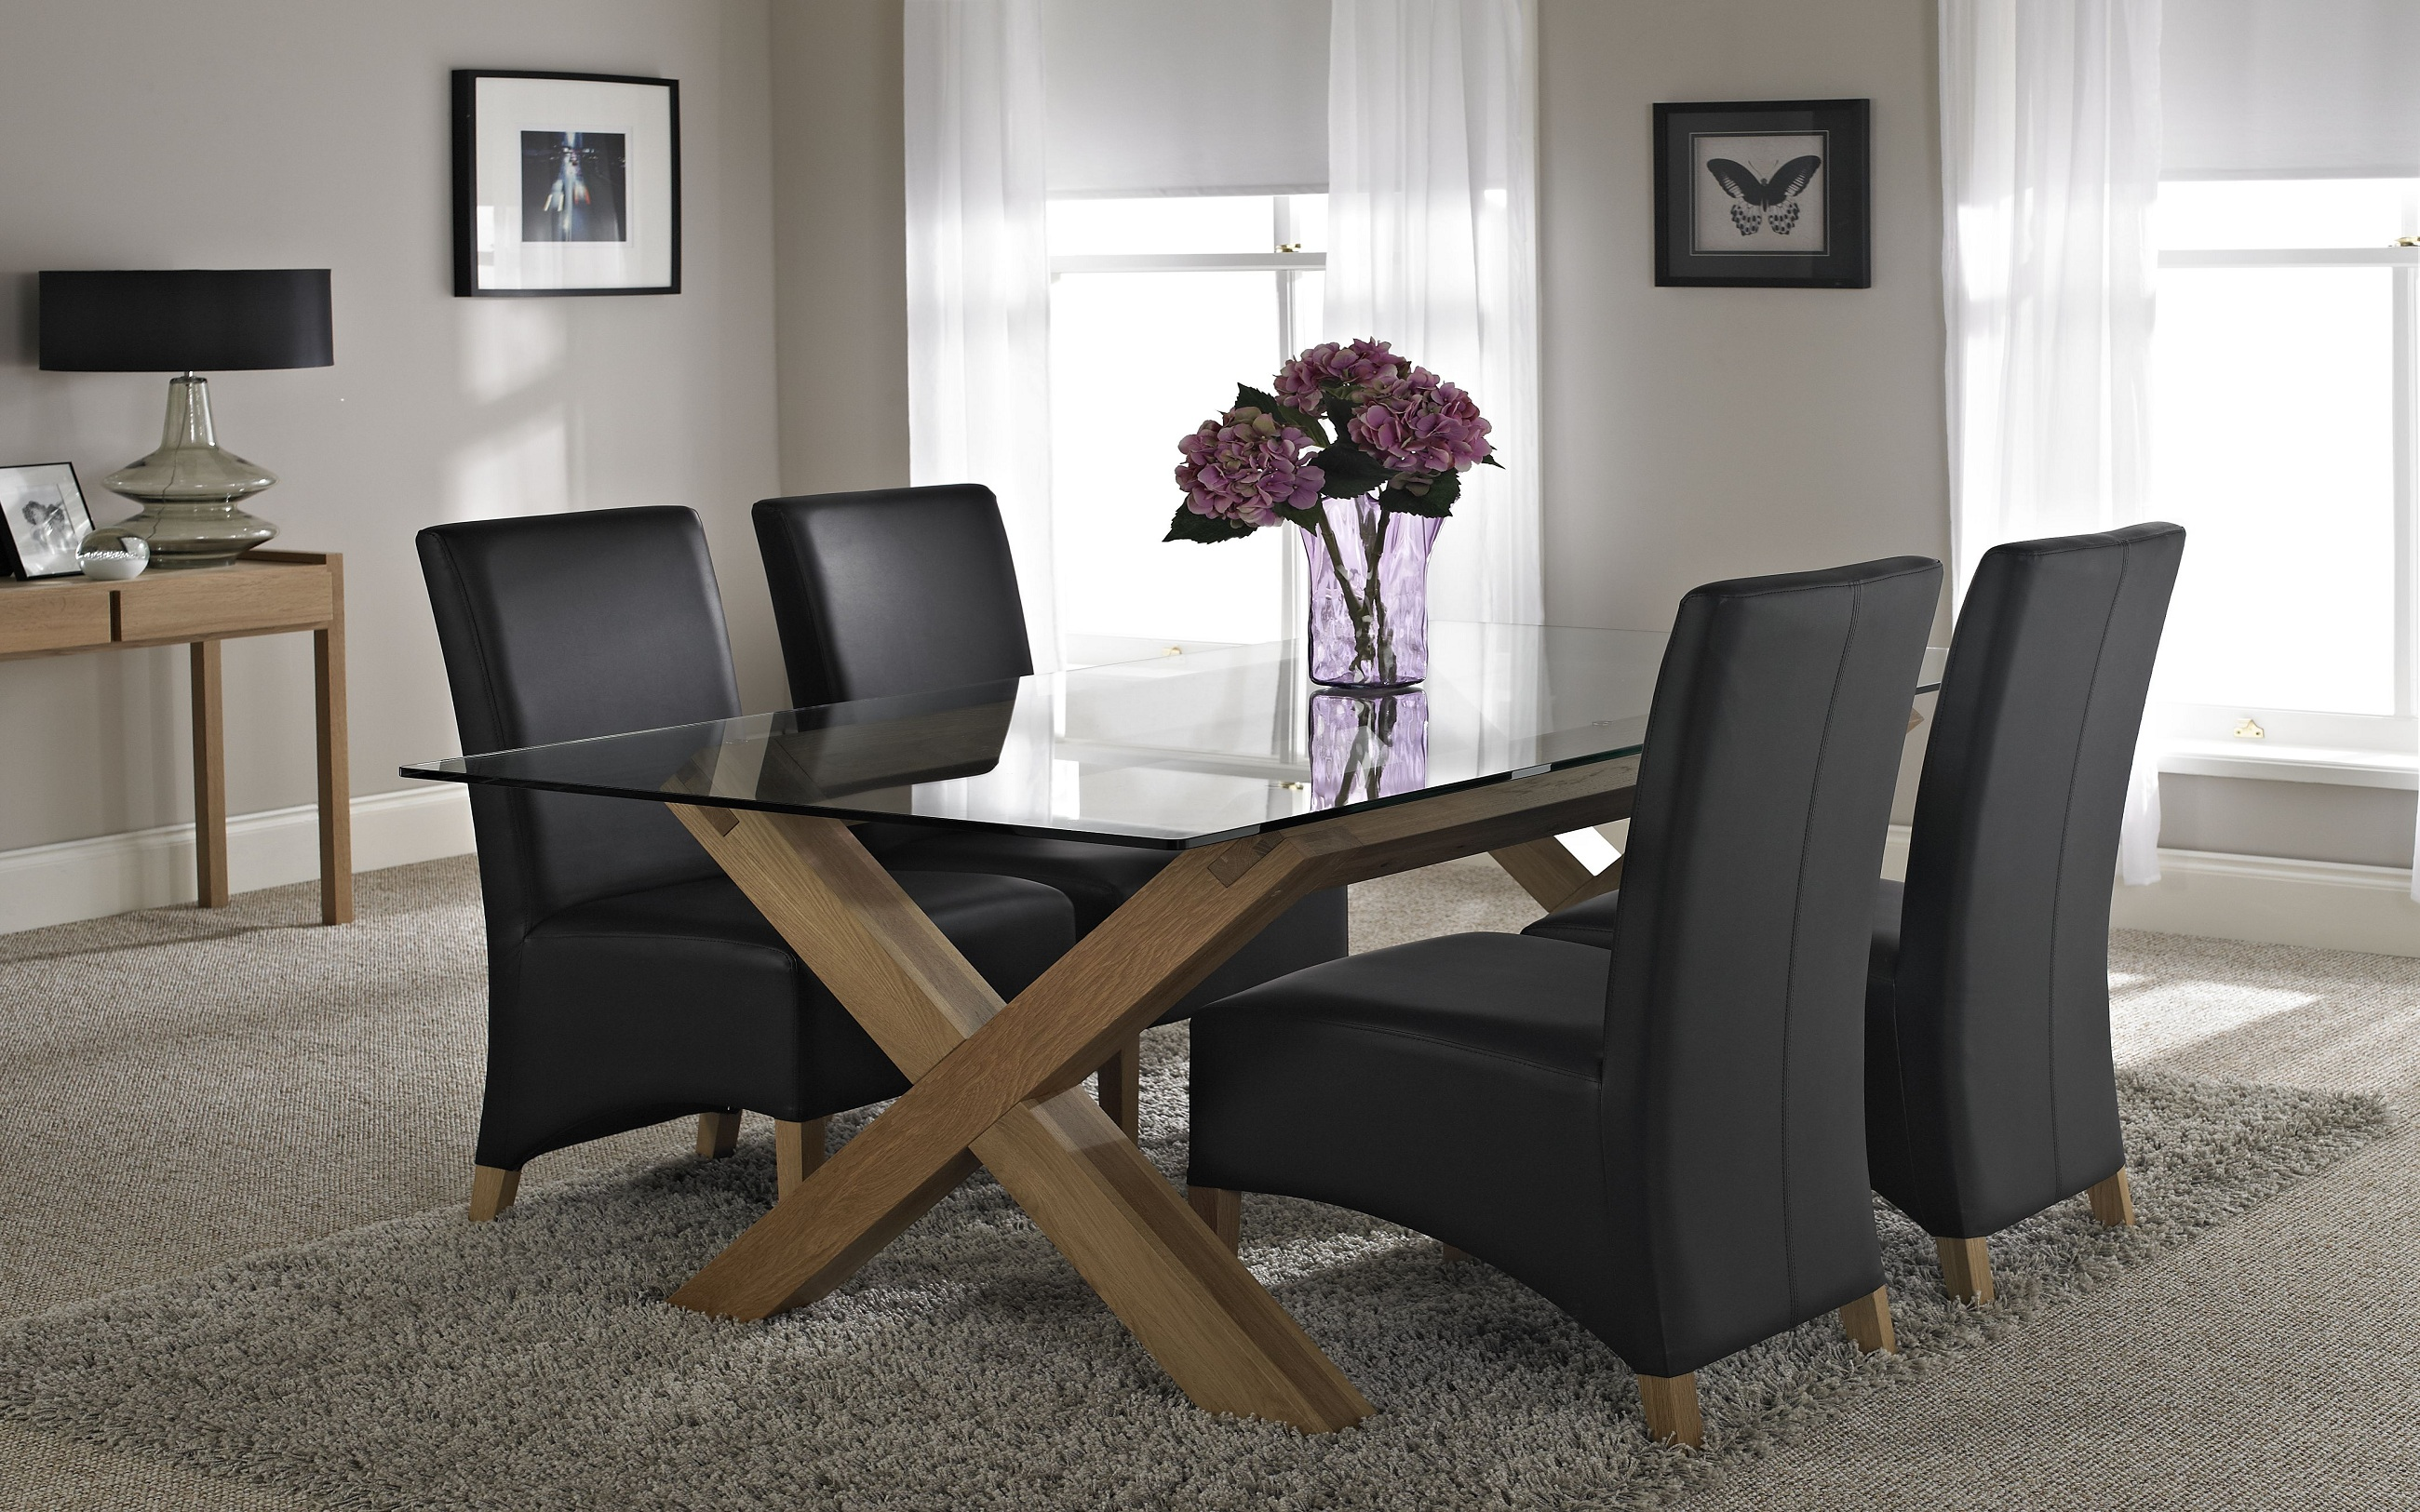 glass dining room table with leather chairs. glass dining room table with leather chairs o